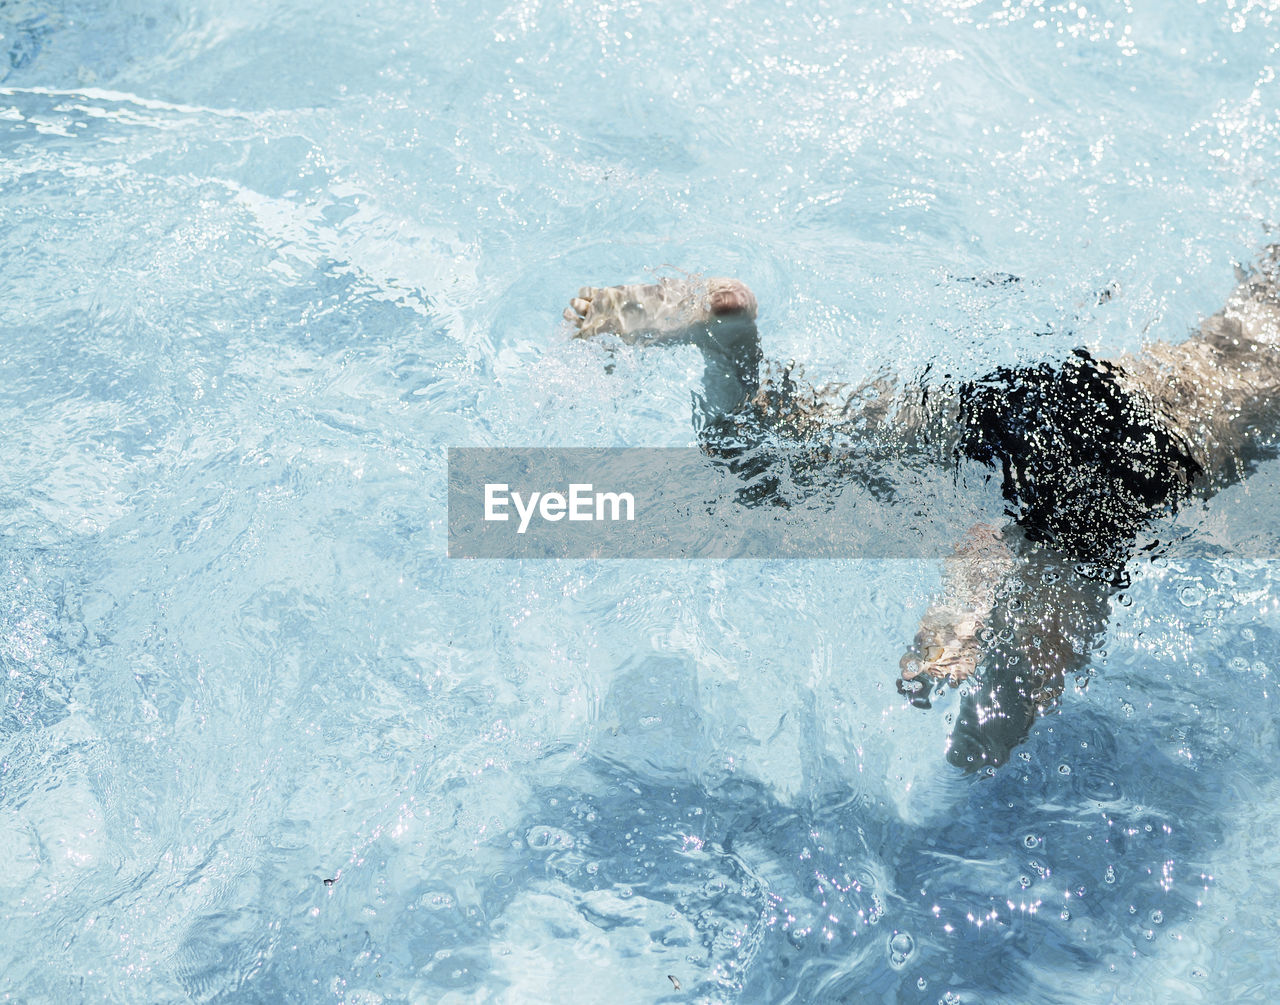 water, motion, splashing, swimming, sport, lifestyles, one person, men, real people, nature, sea, day, leisure activity, waterfront, healthy lifestyle, pool, outdoors, strength, swimming pool